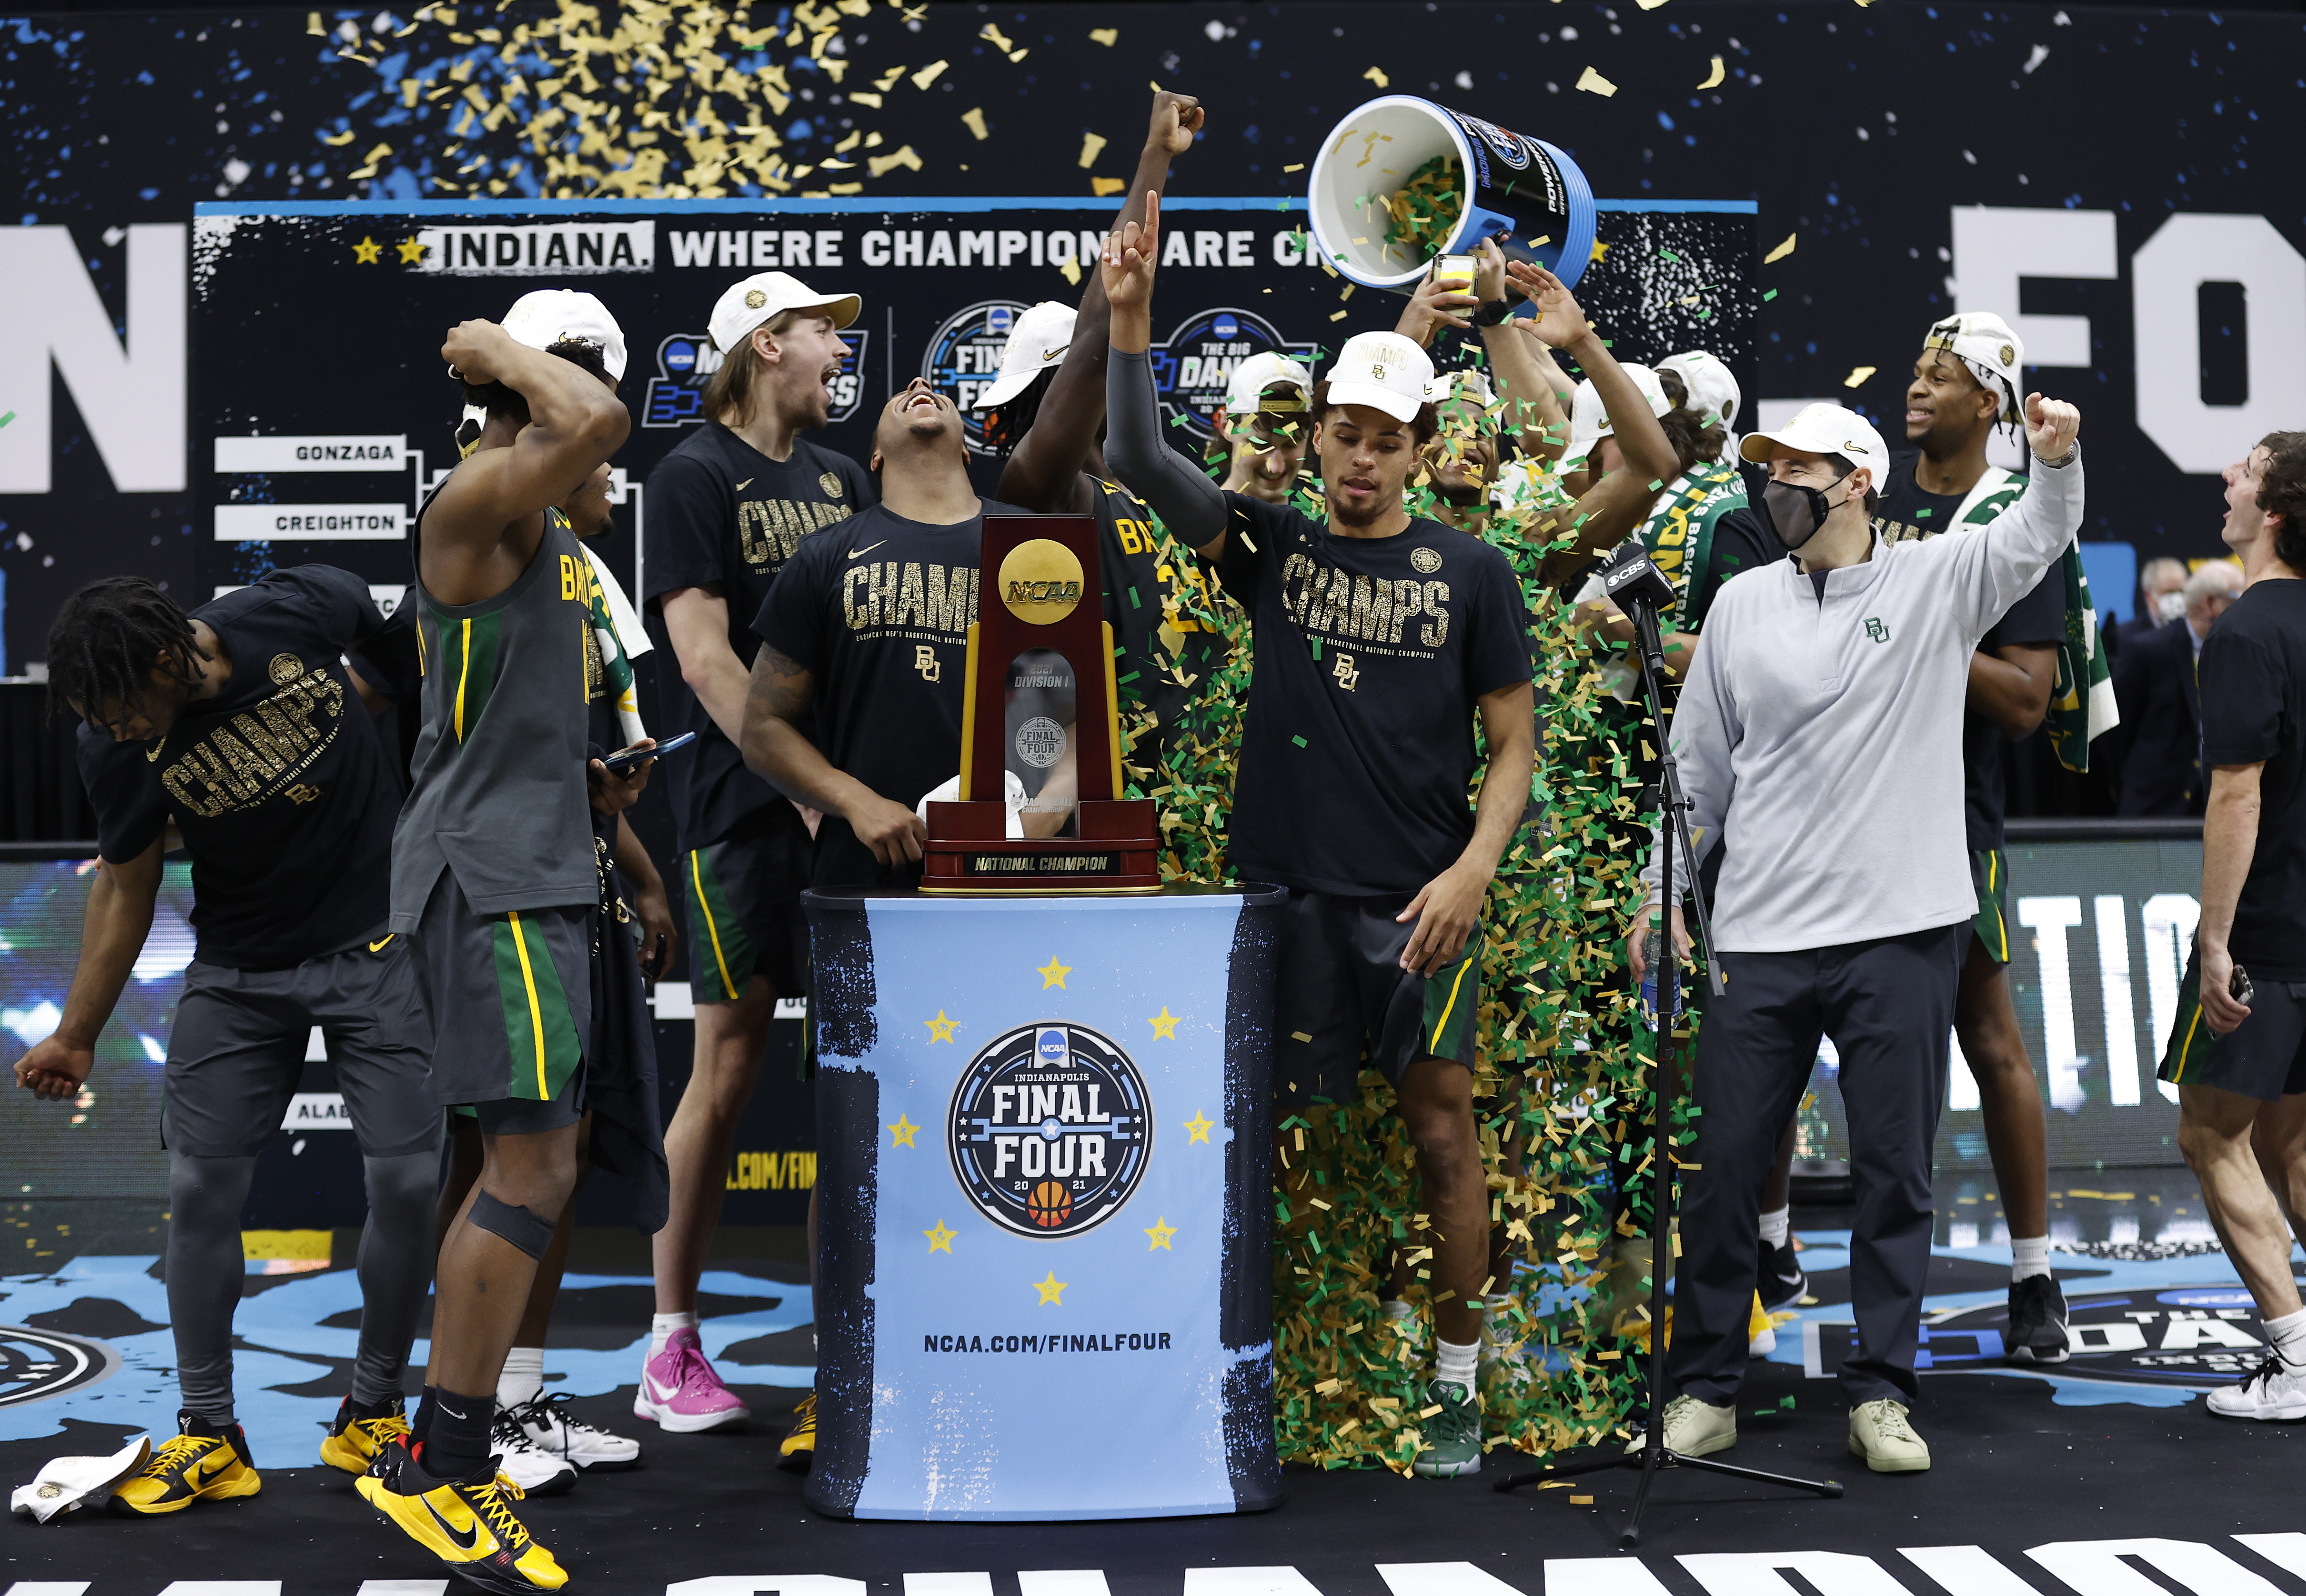 The Baylor Bears celebrate with the trophy after defeating the Gonzaga Bulldogs 86-70 in the National Championship game of the 2021 NCAA Men's Basketball Tournament at Lucas Oil Stadium on April 05, 2021 in Indianapolis, Indiana.